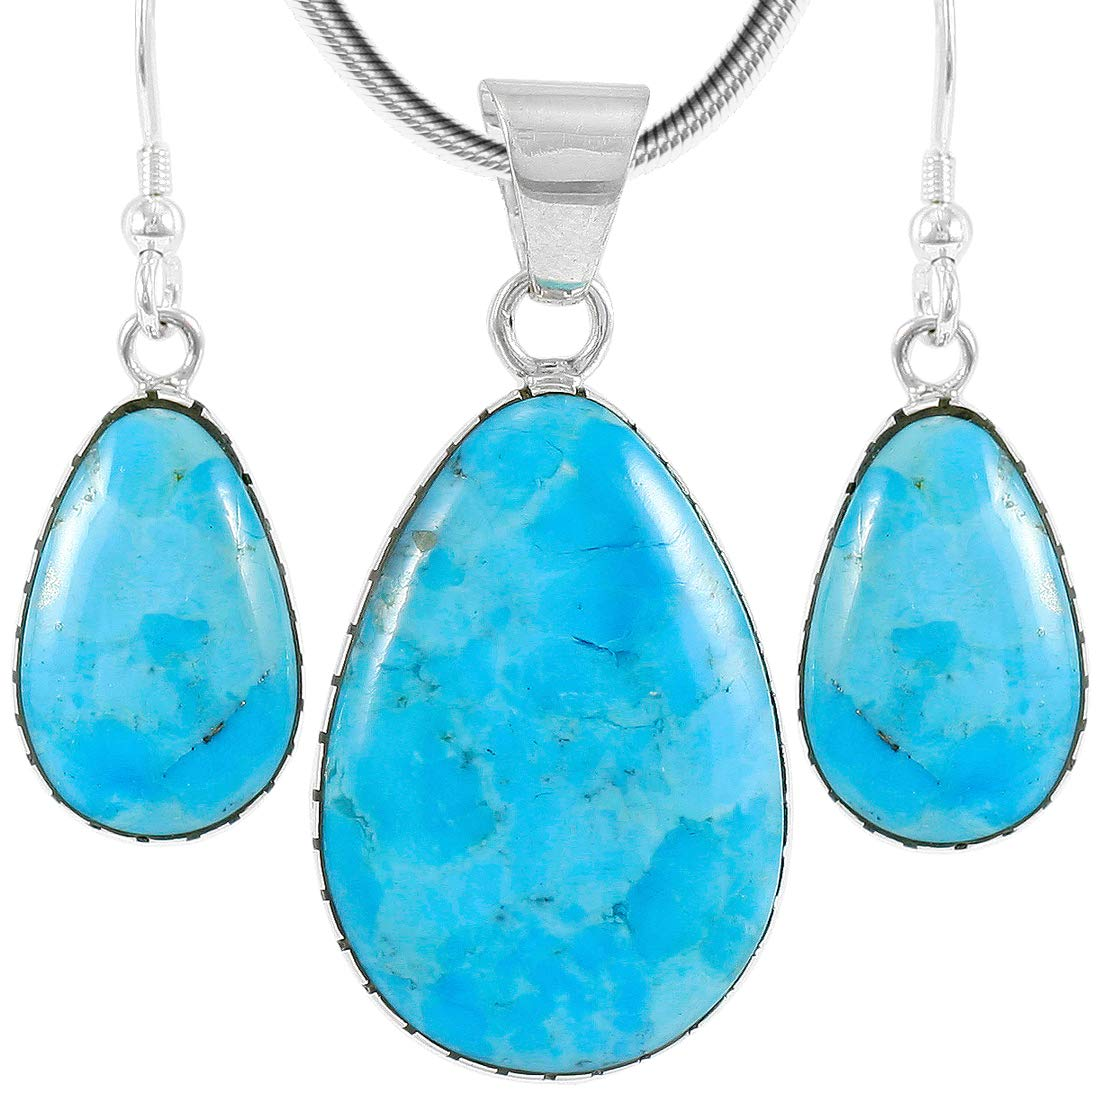 Sterling Silver with Genuine Turquoise Necklace & Earrings Set (SELECT COLOR) (Turquoise) by Turquoise Network (Image #1)